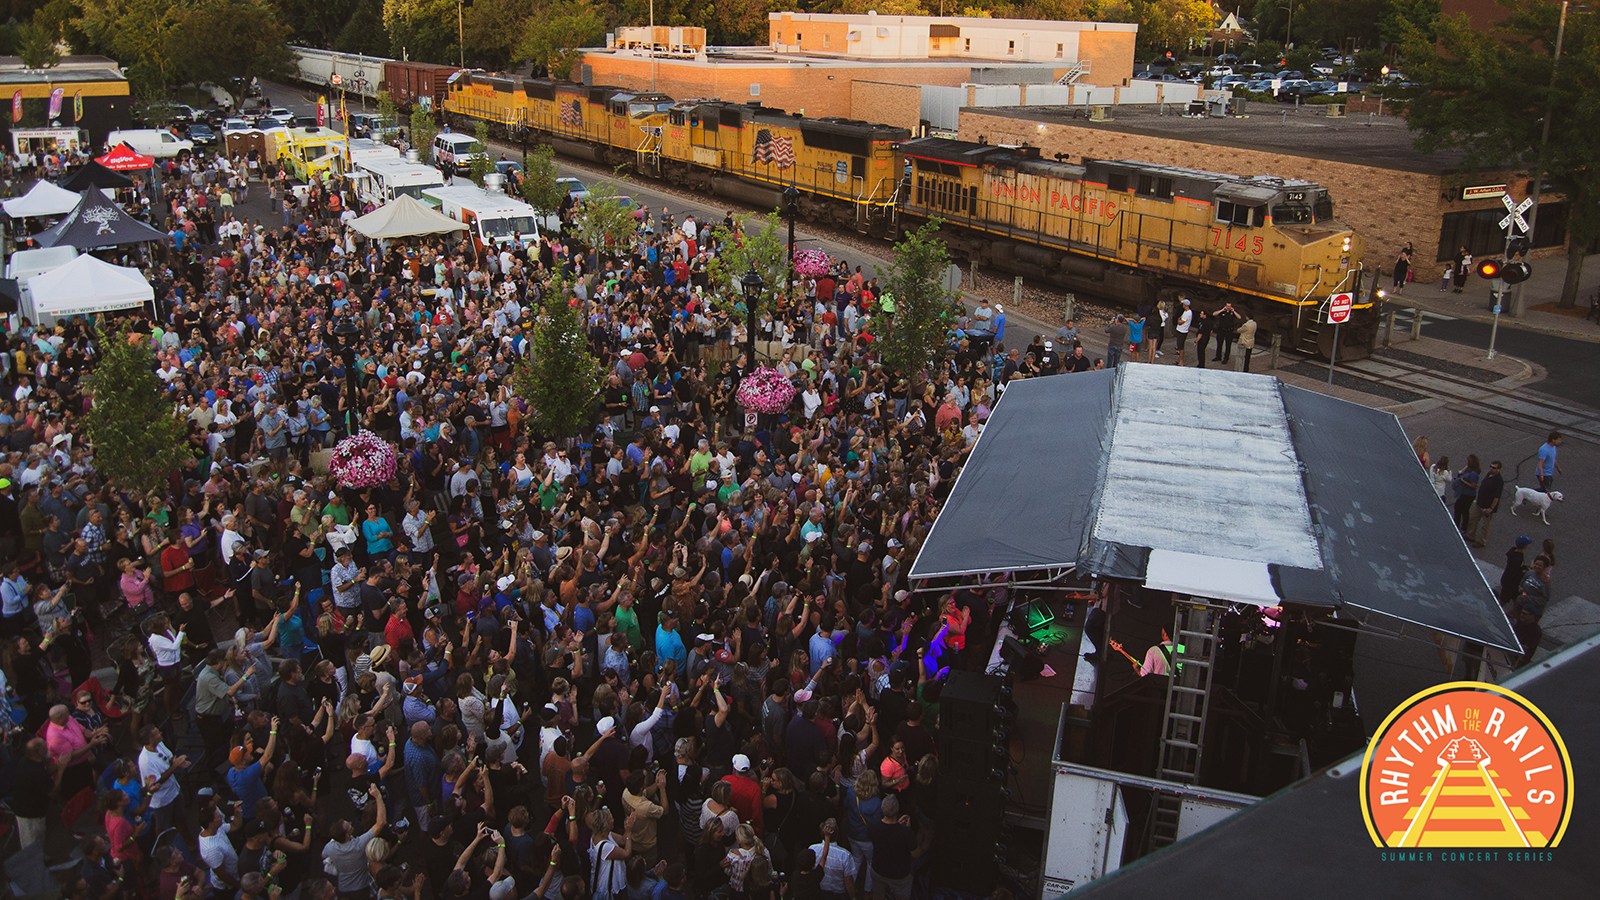 2019 Rhythm on the Rails